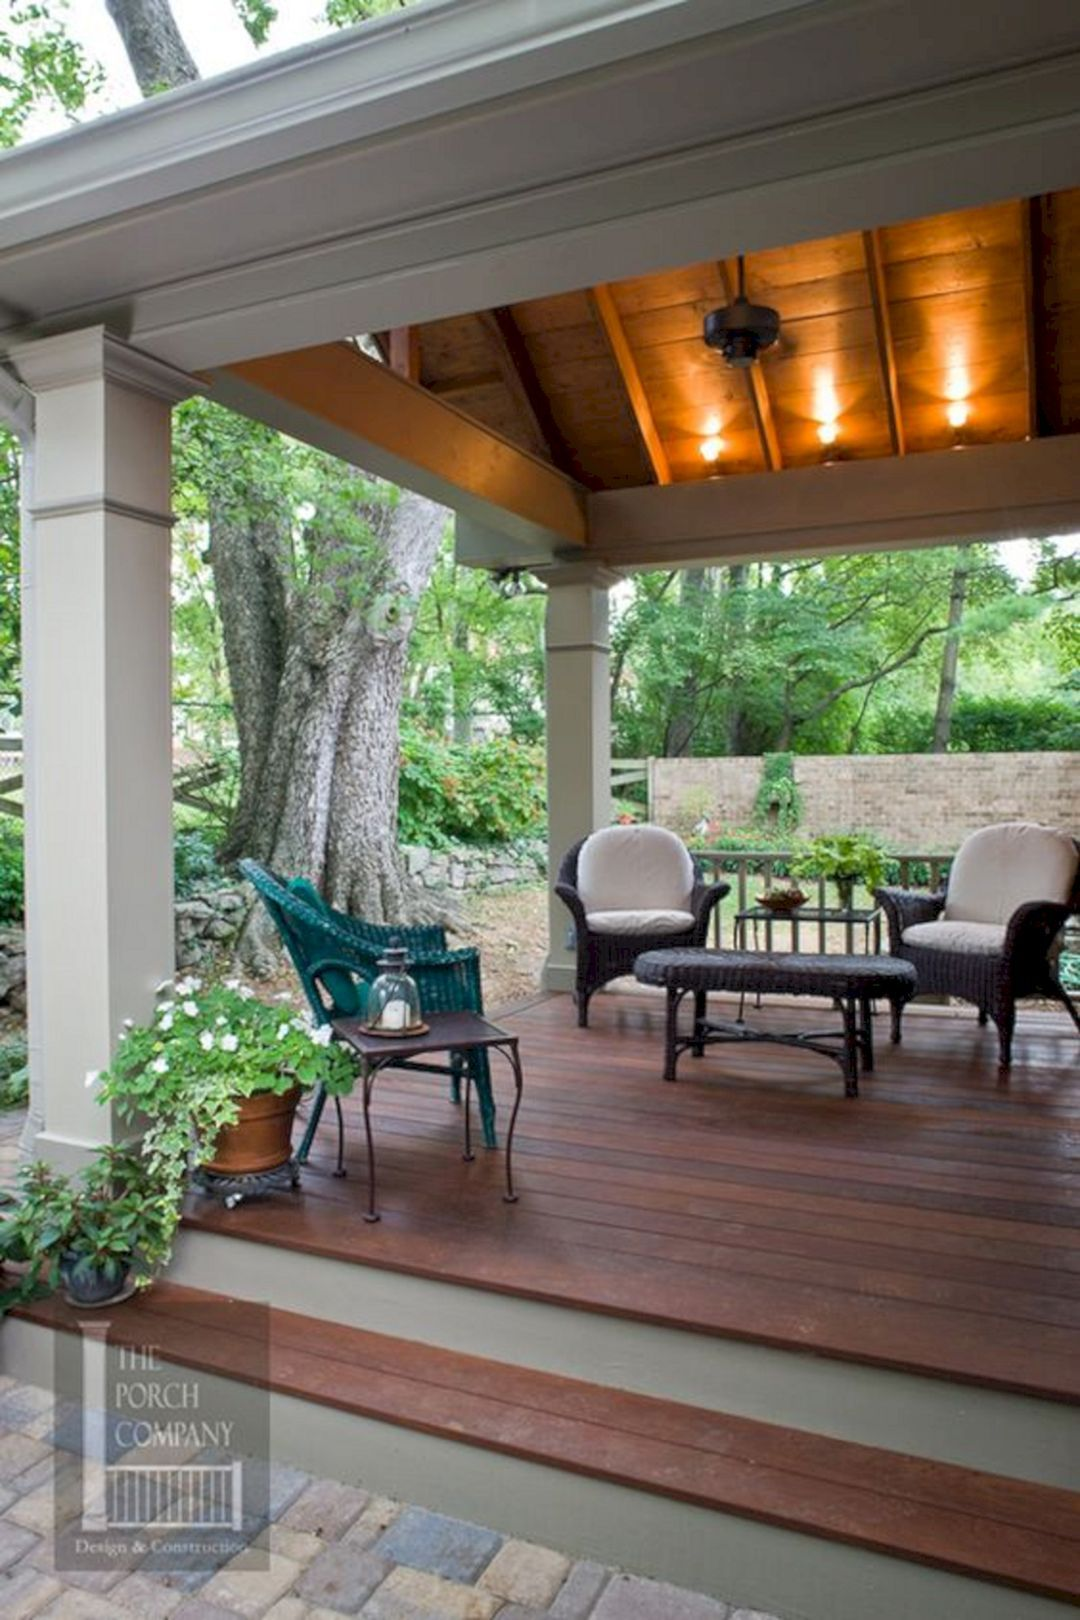 Incredible Wood Backyard Pavilion Design Ideas Outdoor 1: 65+ Incredible Wood Ipe Deck Ideas For Your Outdoor Tile